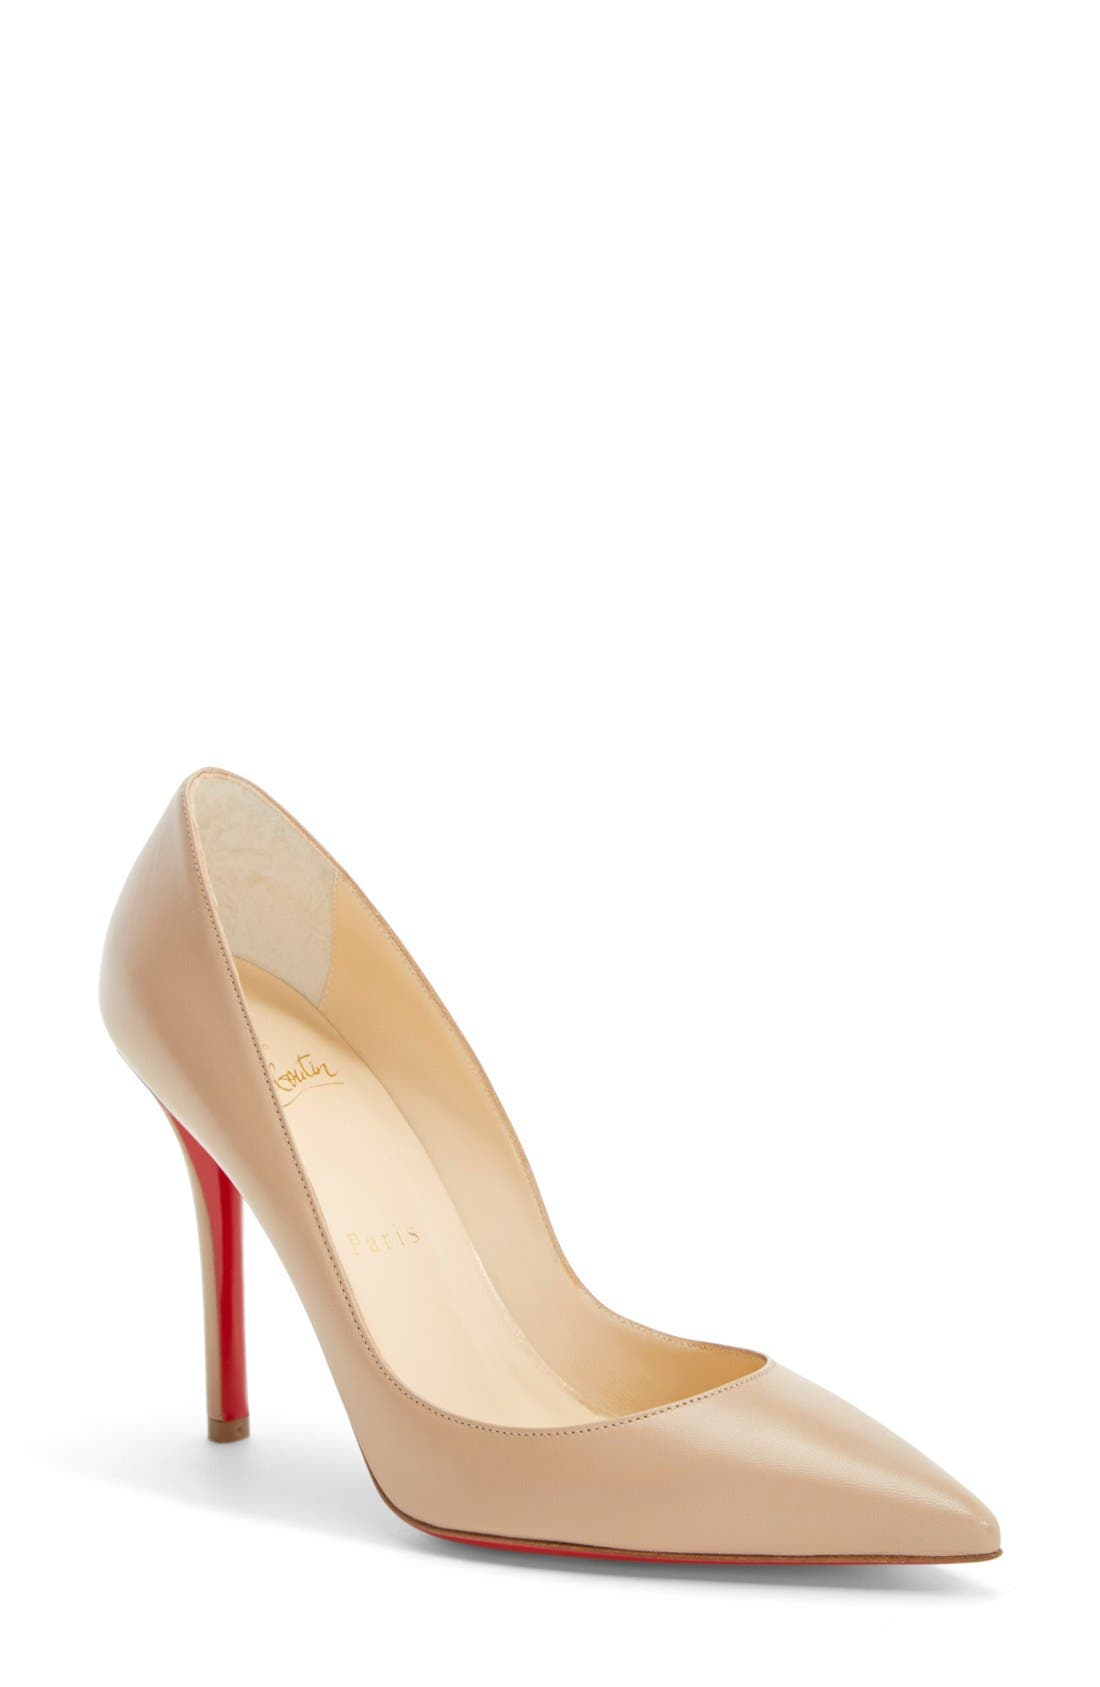 christian louboutin shoes average price